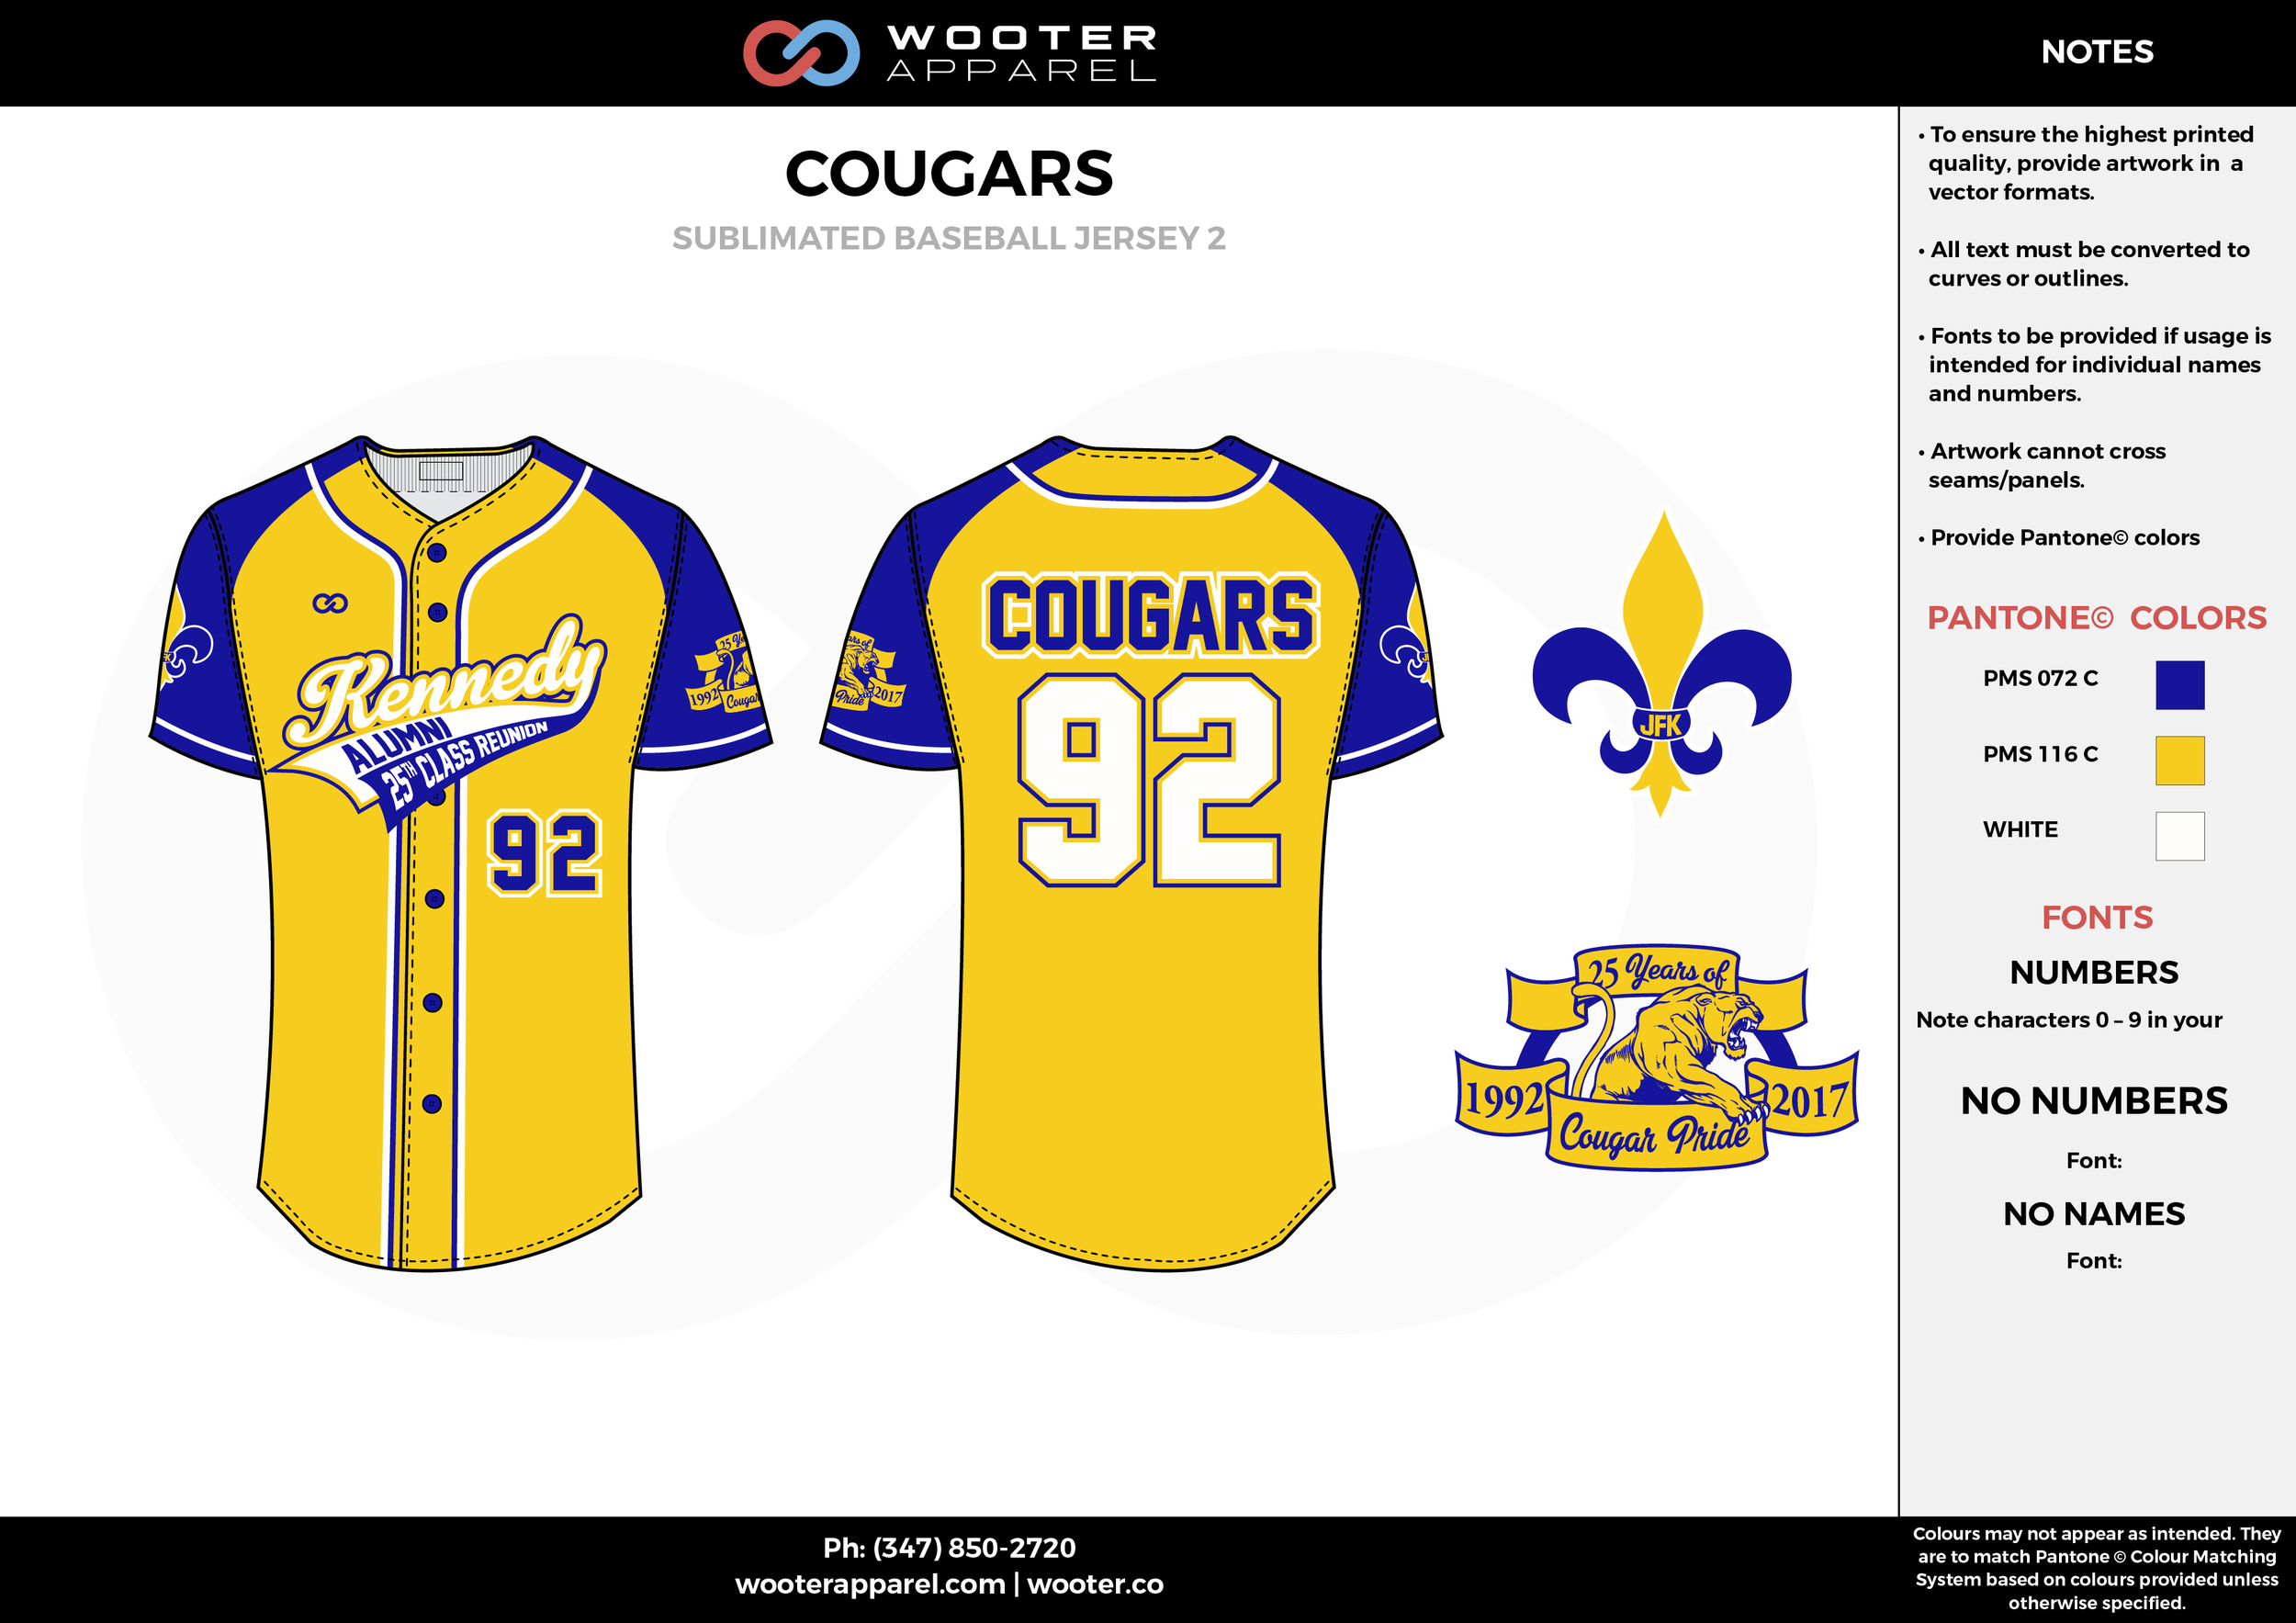 COUGARS yellow blue white School baseball uniforms jerseys tops